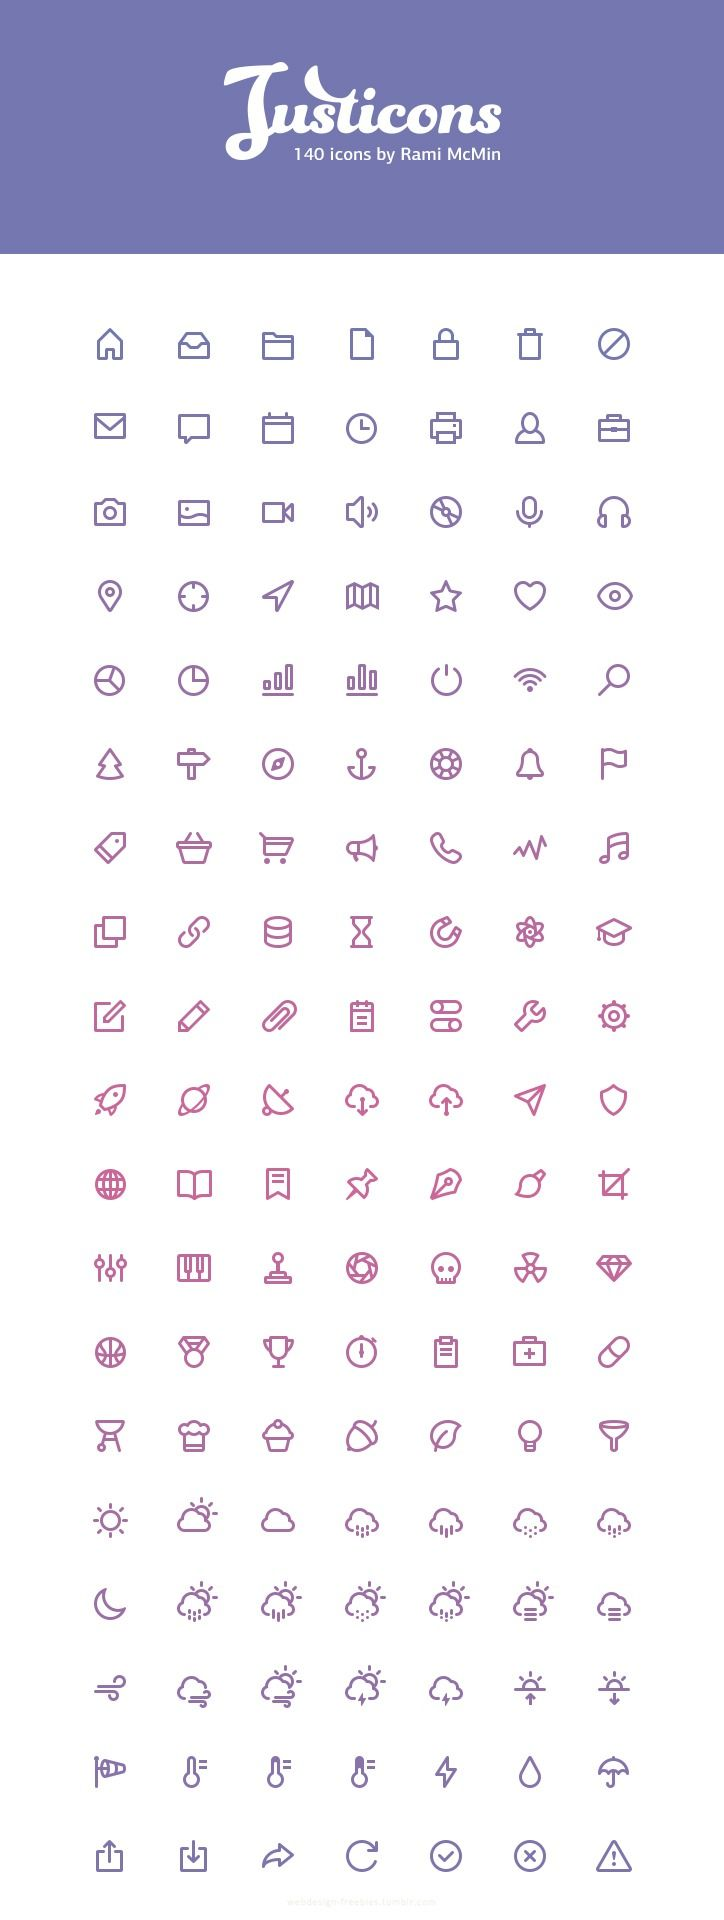 Justicons - 140 Free Stroke Icons